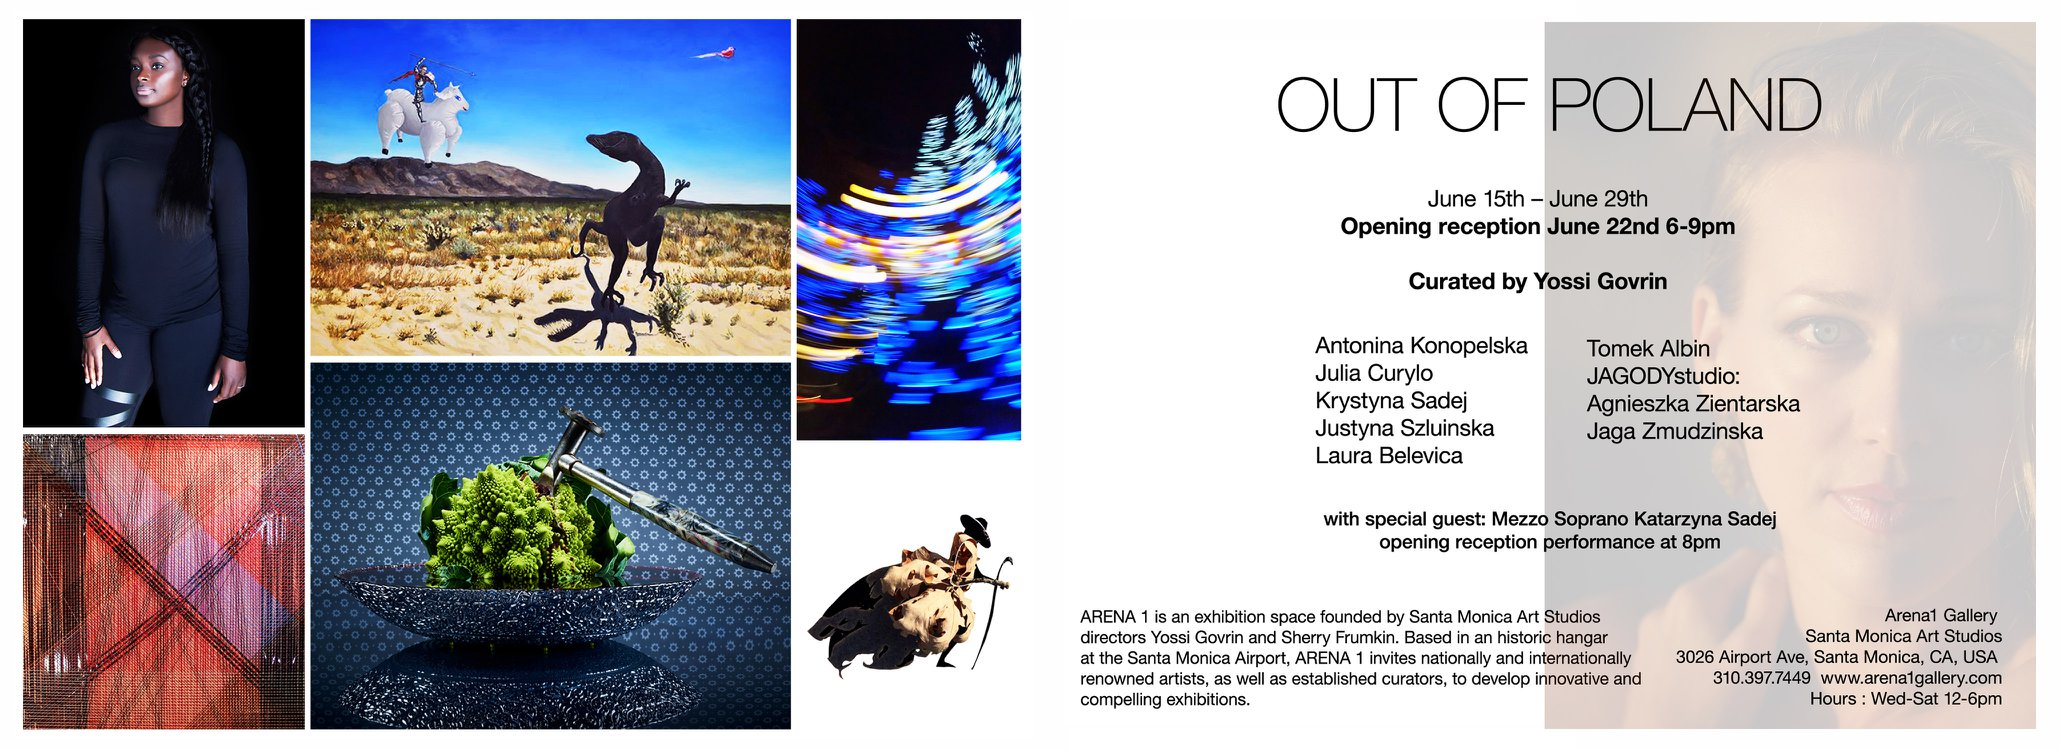 OUT OF POLAND, a group exhibition in Santa Monica, CA